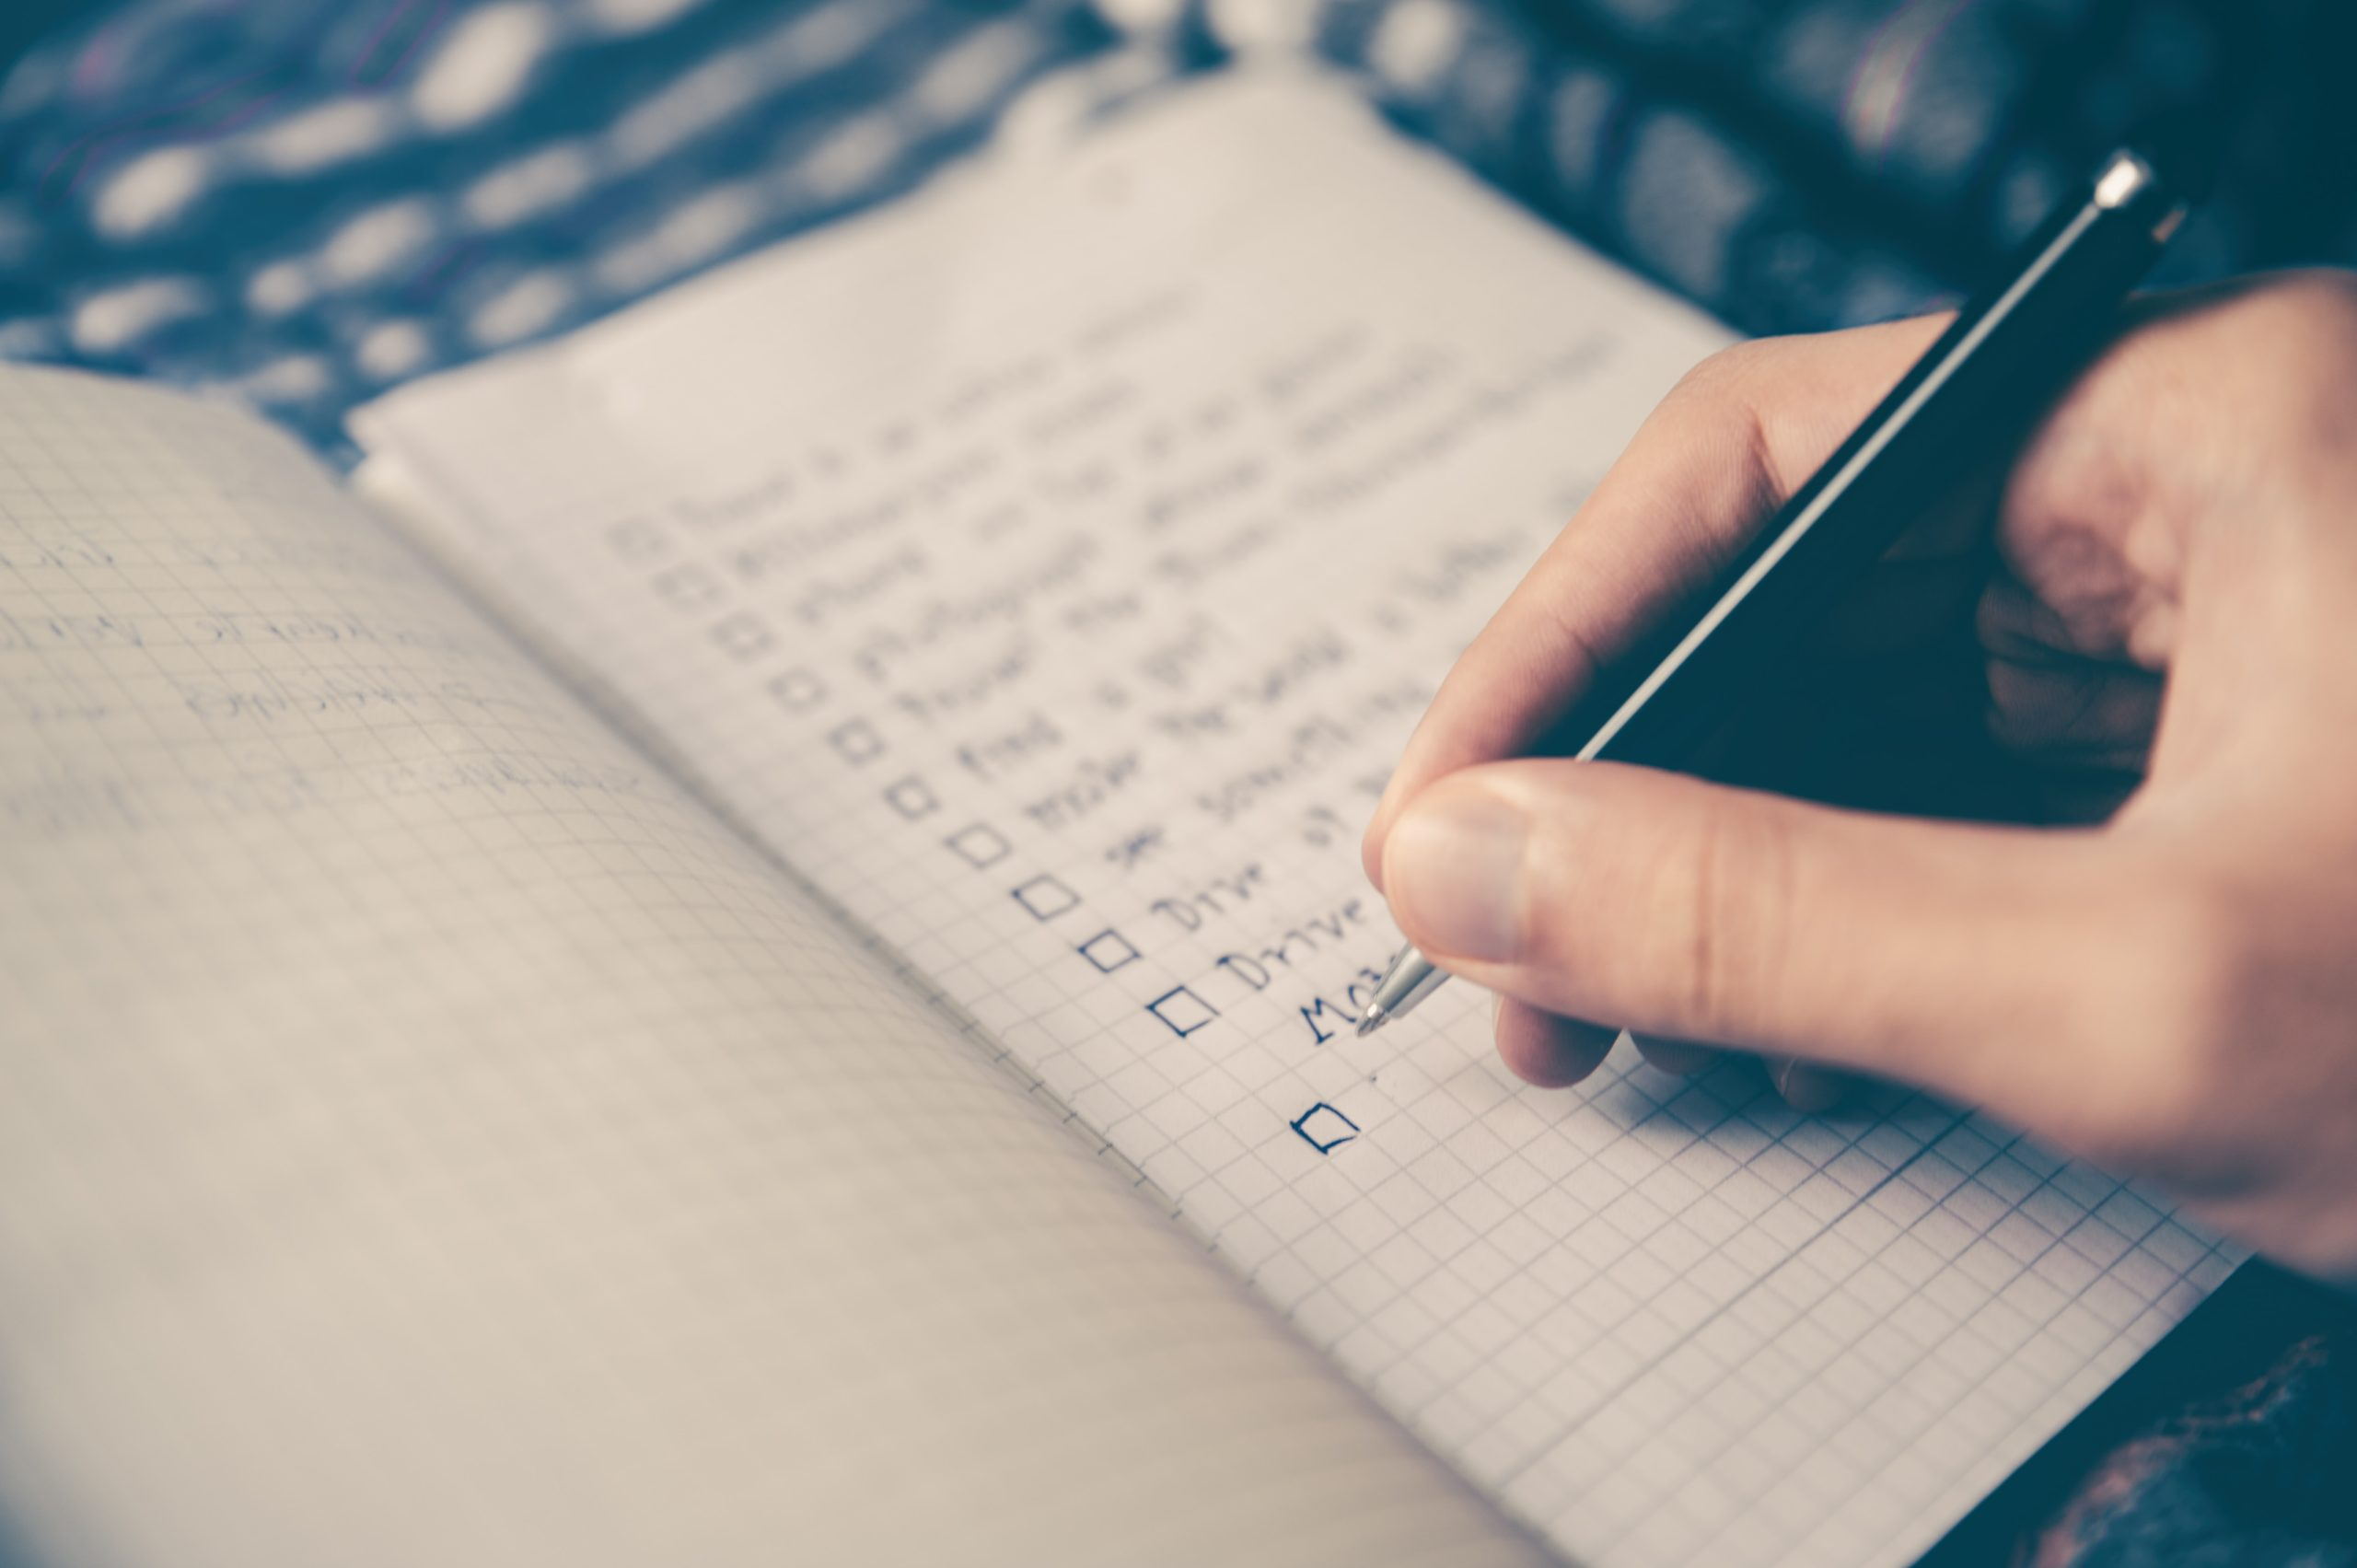 CV checklist – what to look for when screening applications